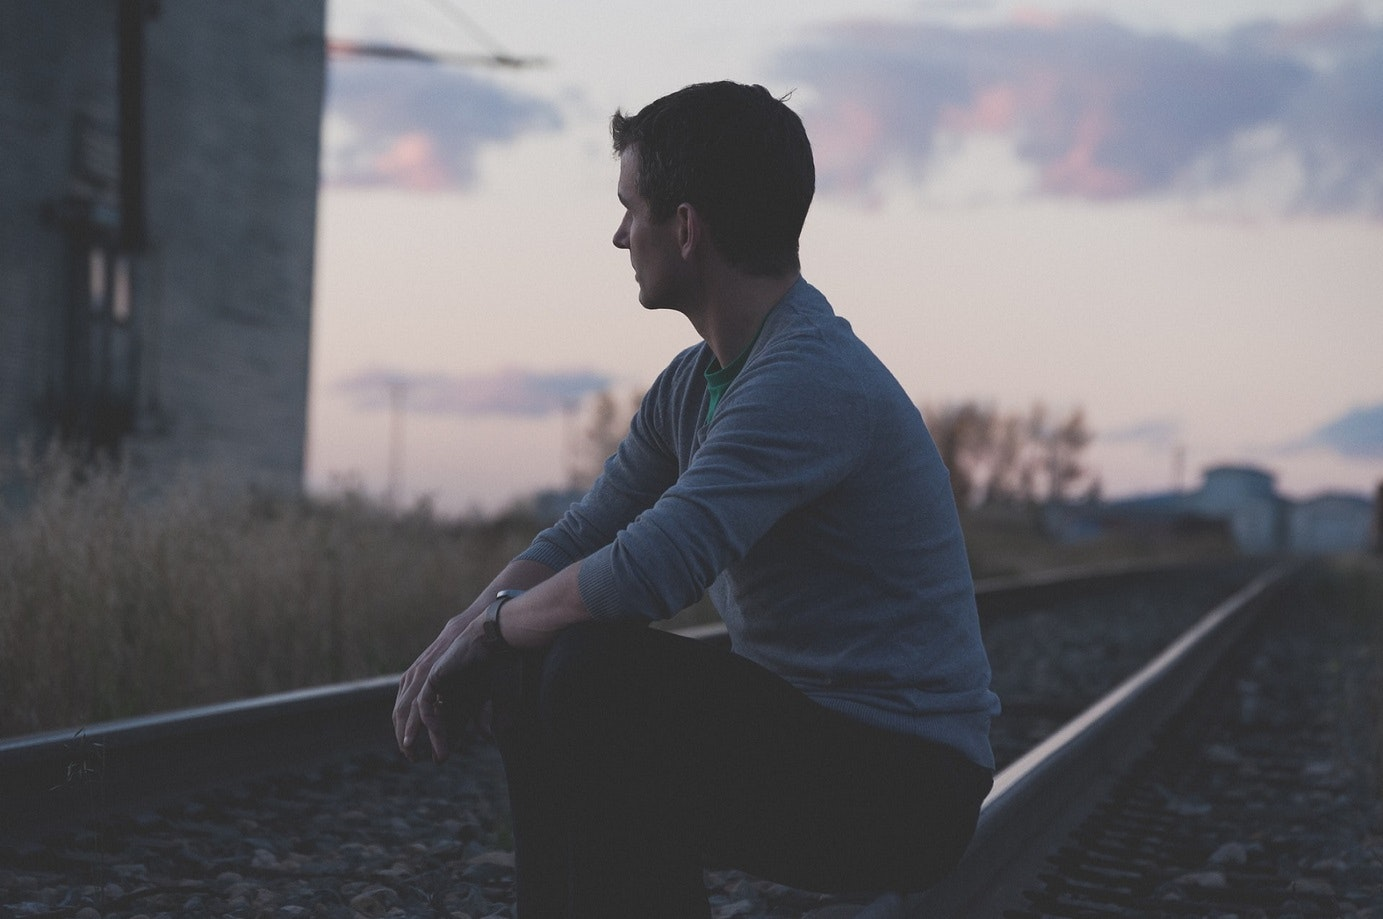 man sitting on a train track